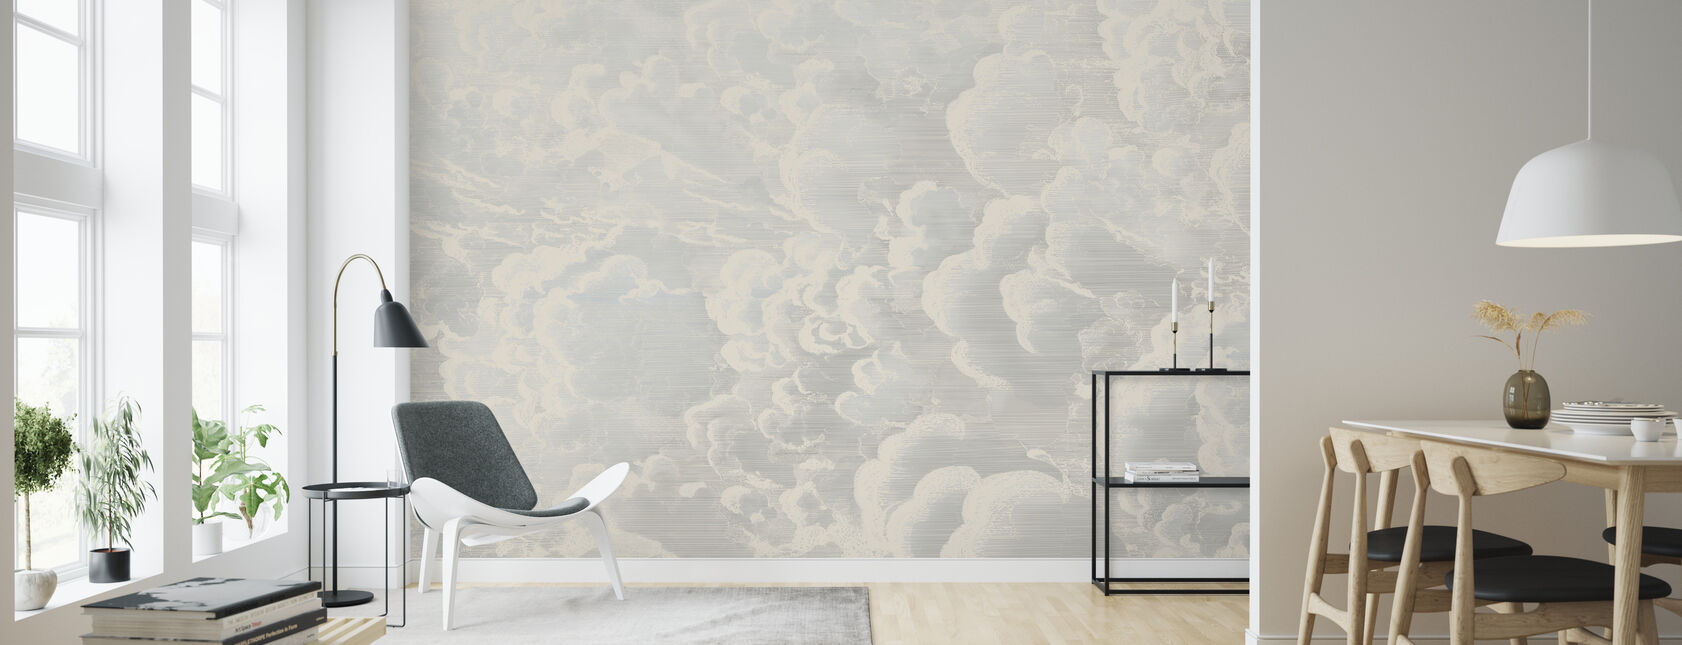 Cradled in Clouds - Wallpaper - Living Room